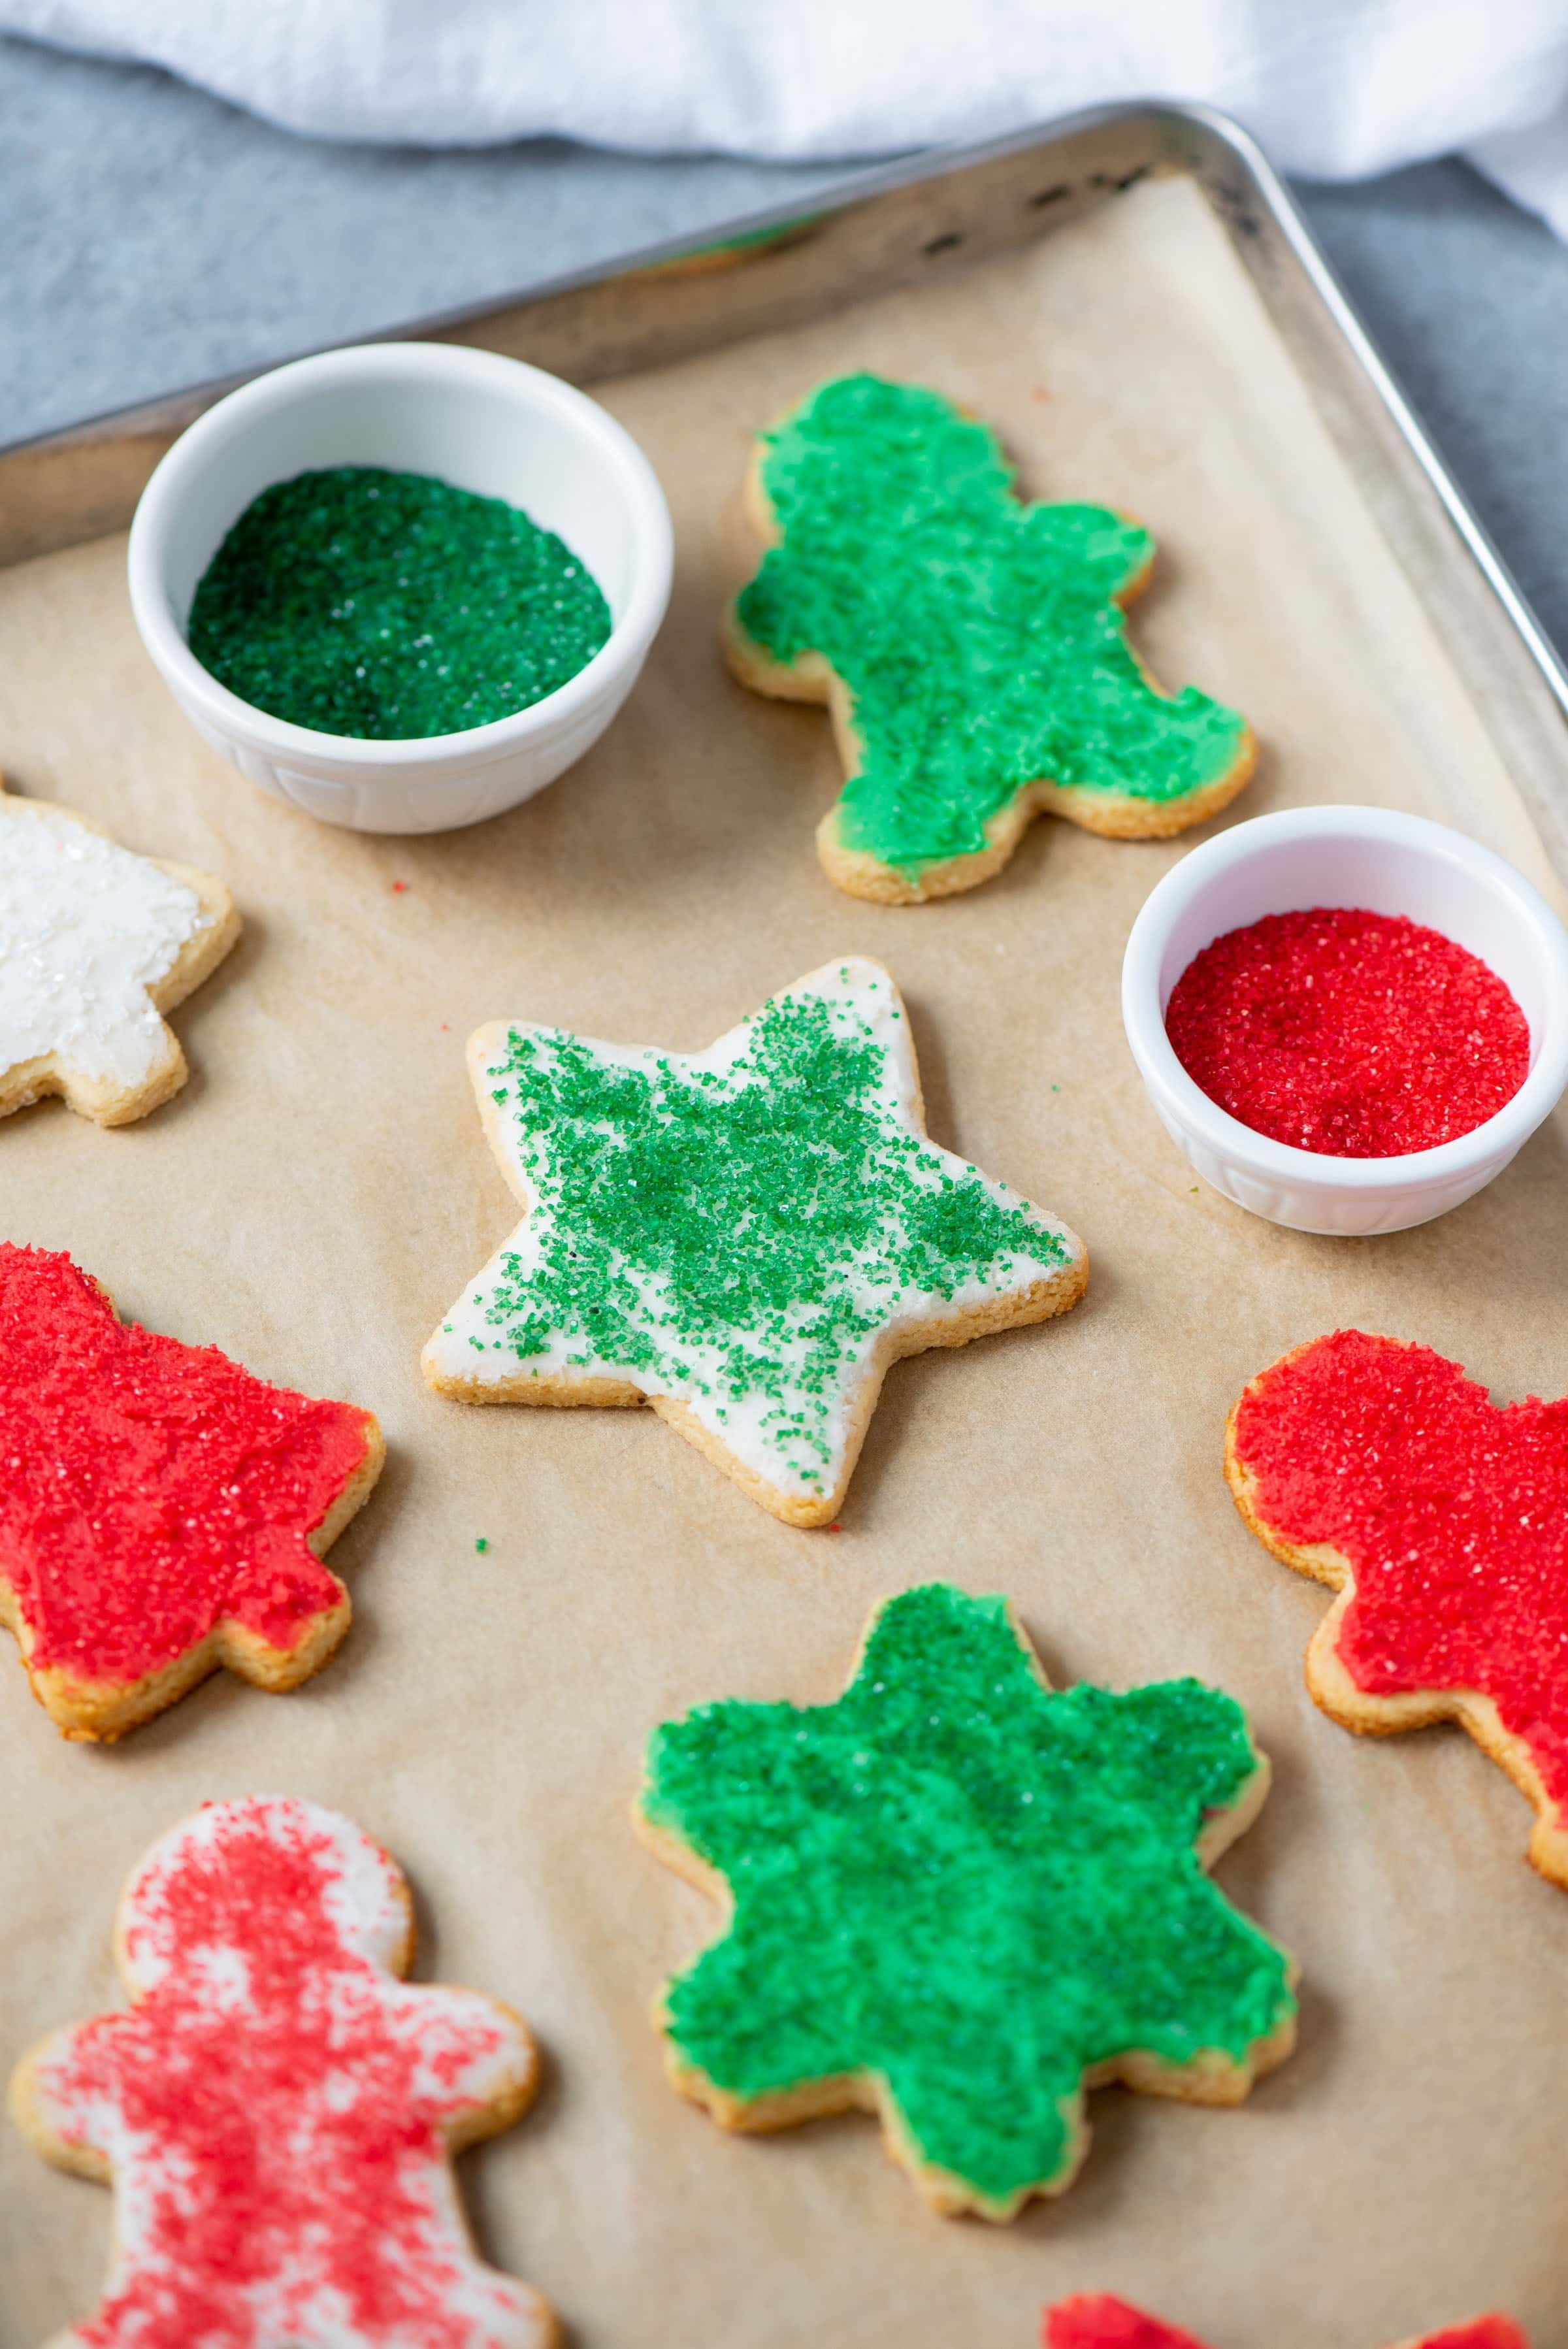 Grain-Free Paleo Cut-Out Sugar Cookies on parchment paper, topped with frosting and sprinkles